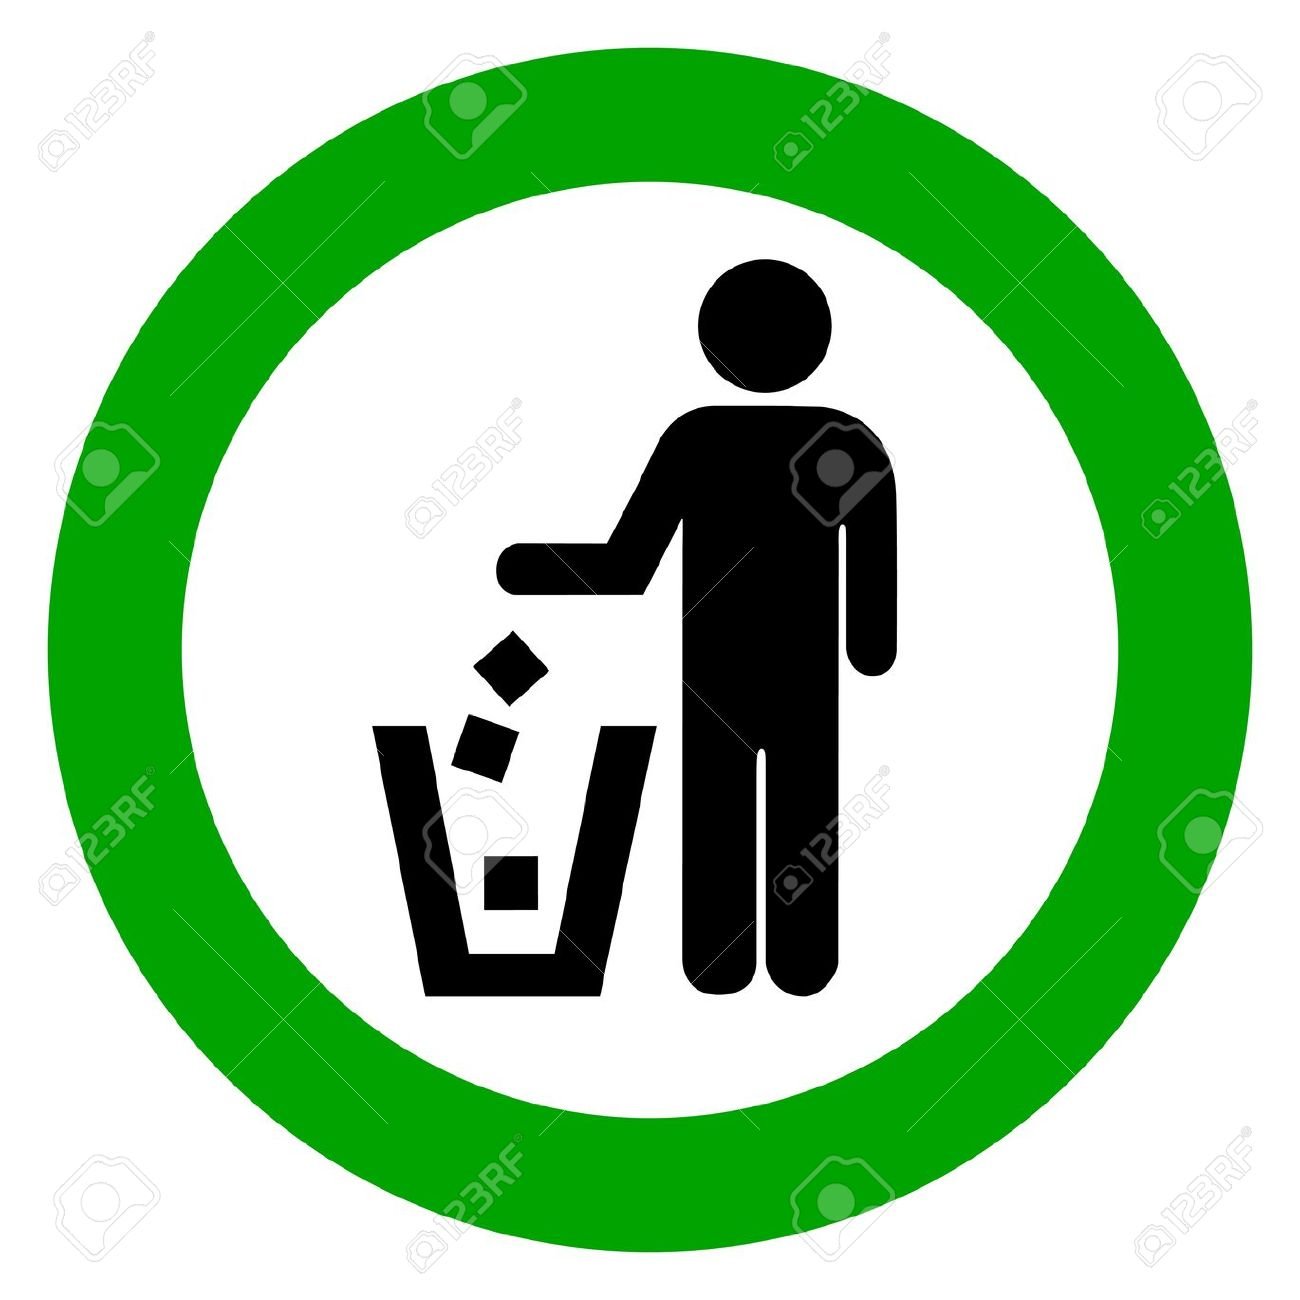 Keep Clean, No Littering Vector Sign Royalty Free Cliparts.